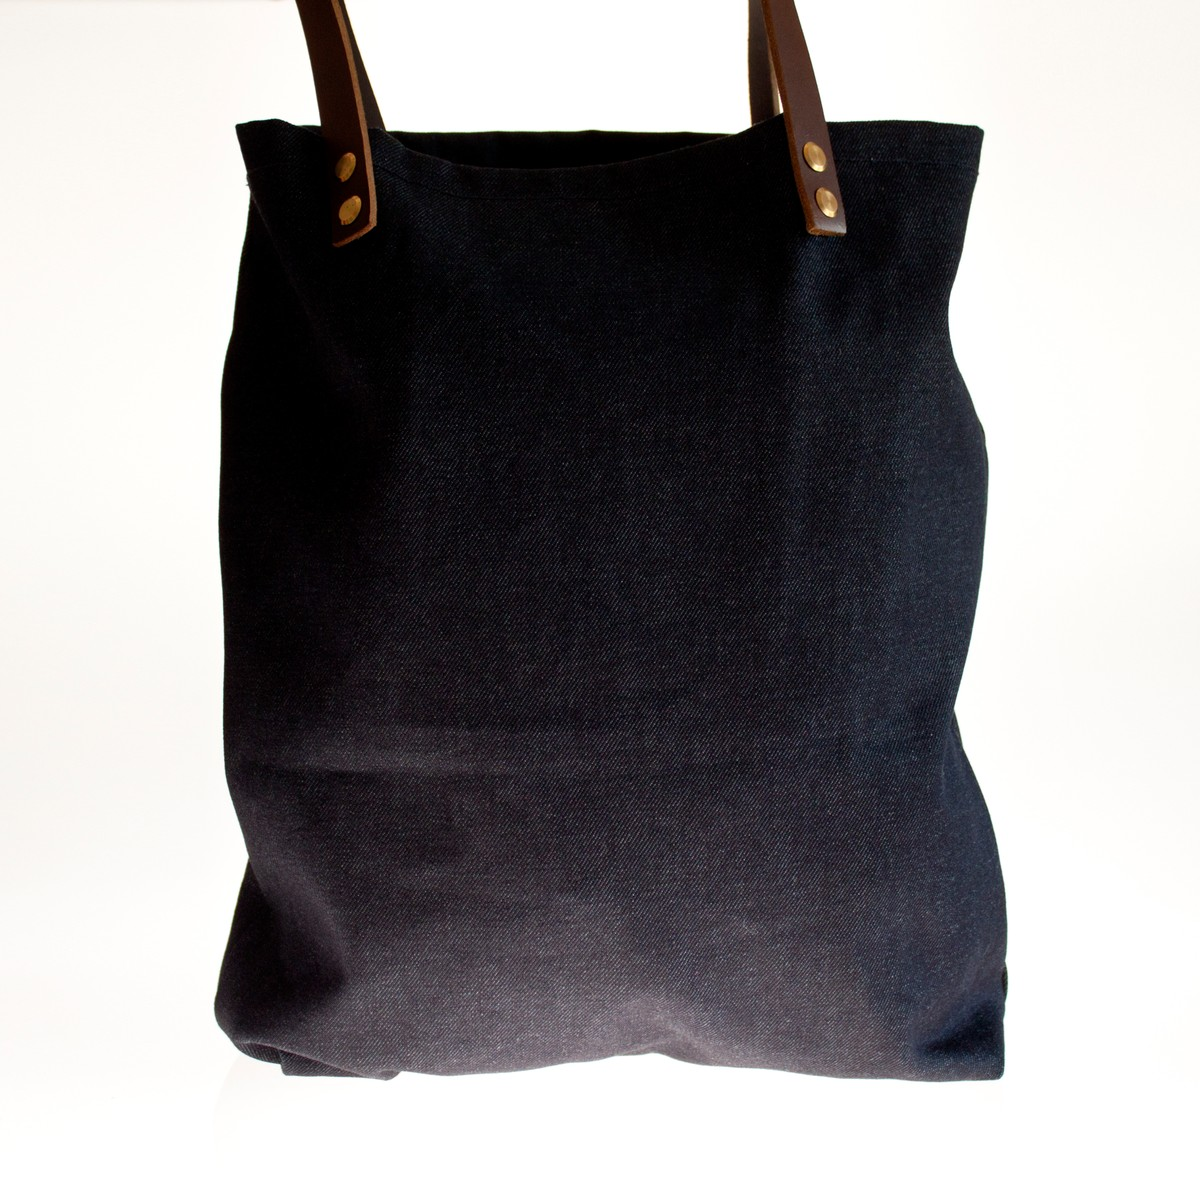 Photo of Indigo Denim Tote Bag